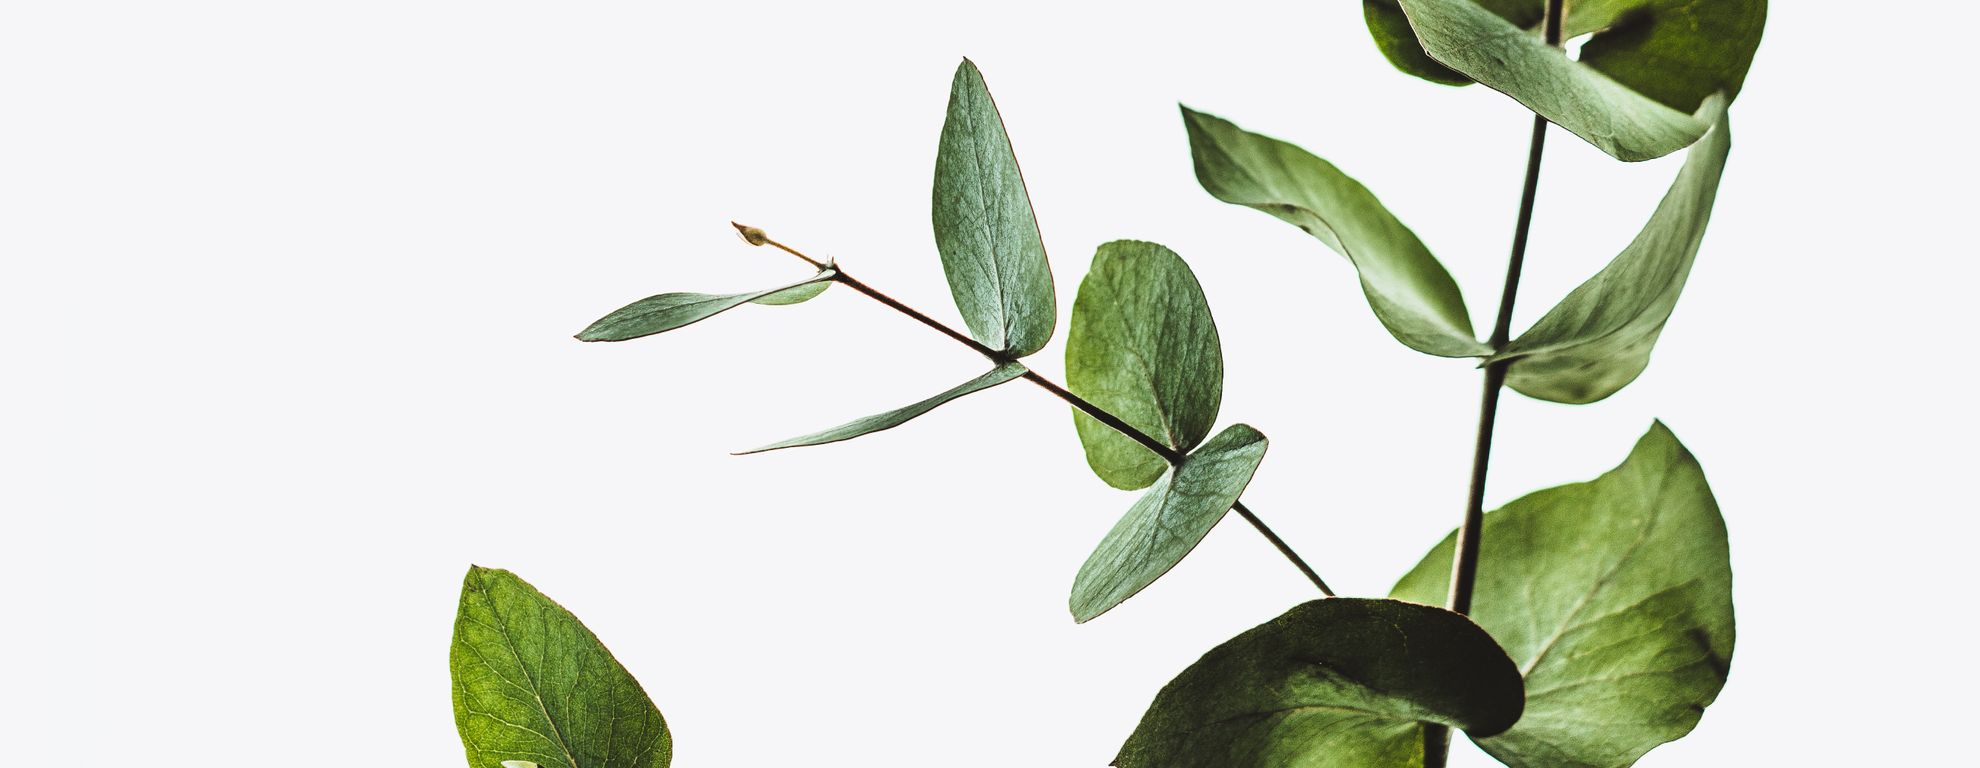 Plant on my desk is a friend - Featured image